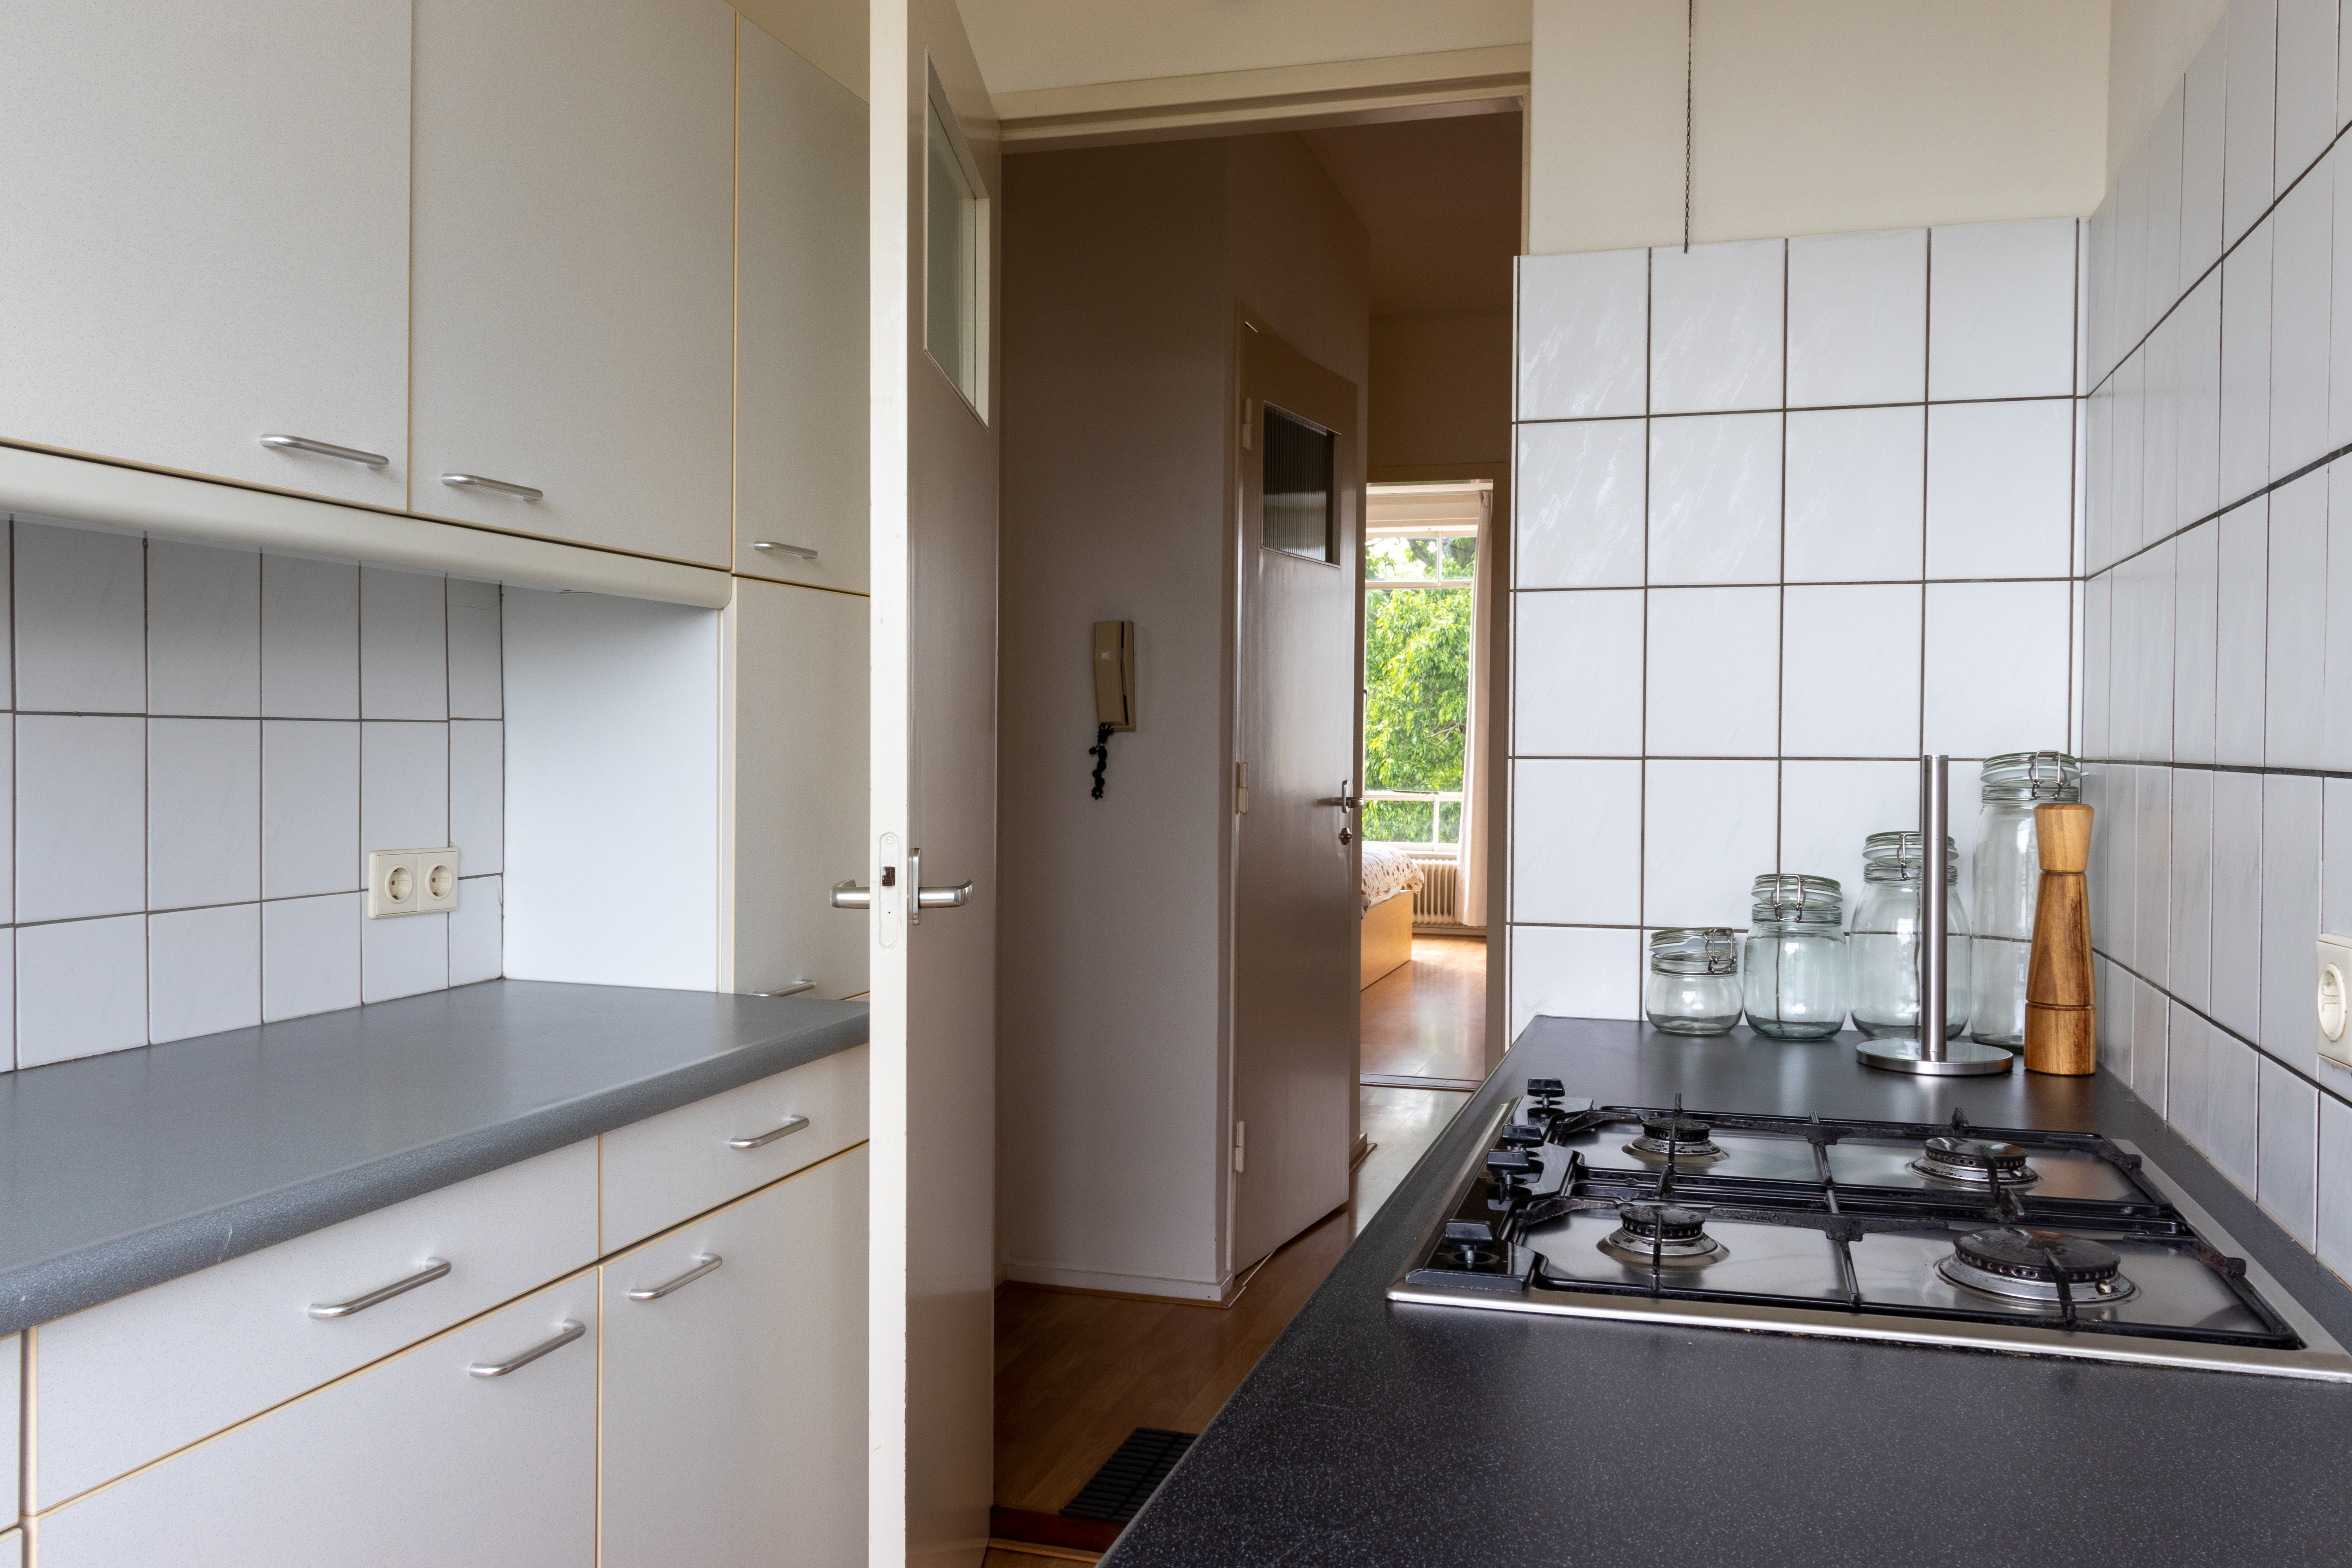 Smaragdhorst kitchen